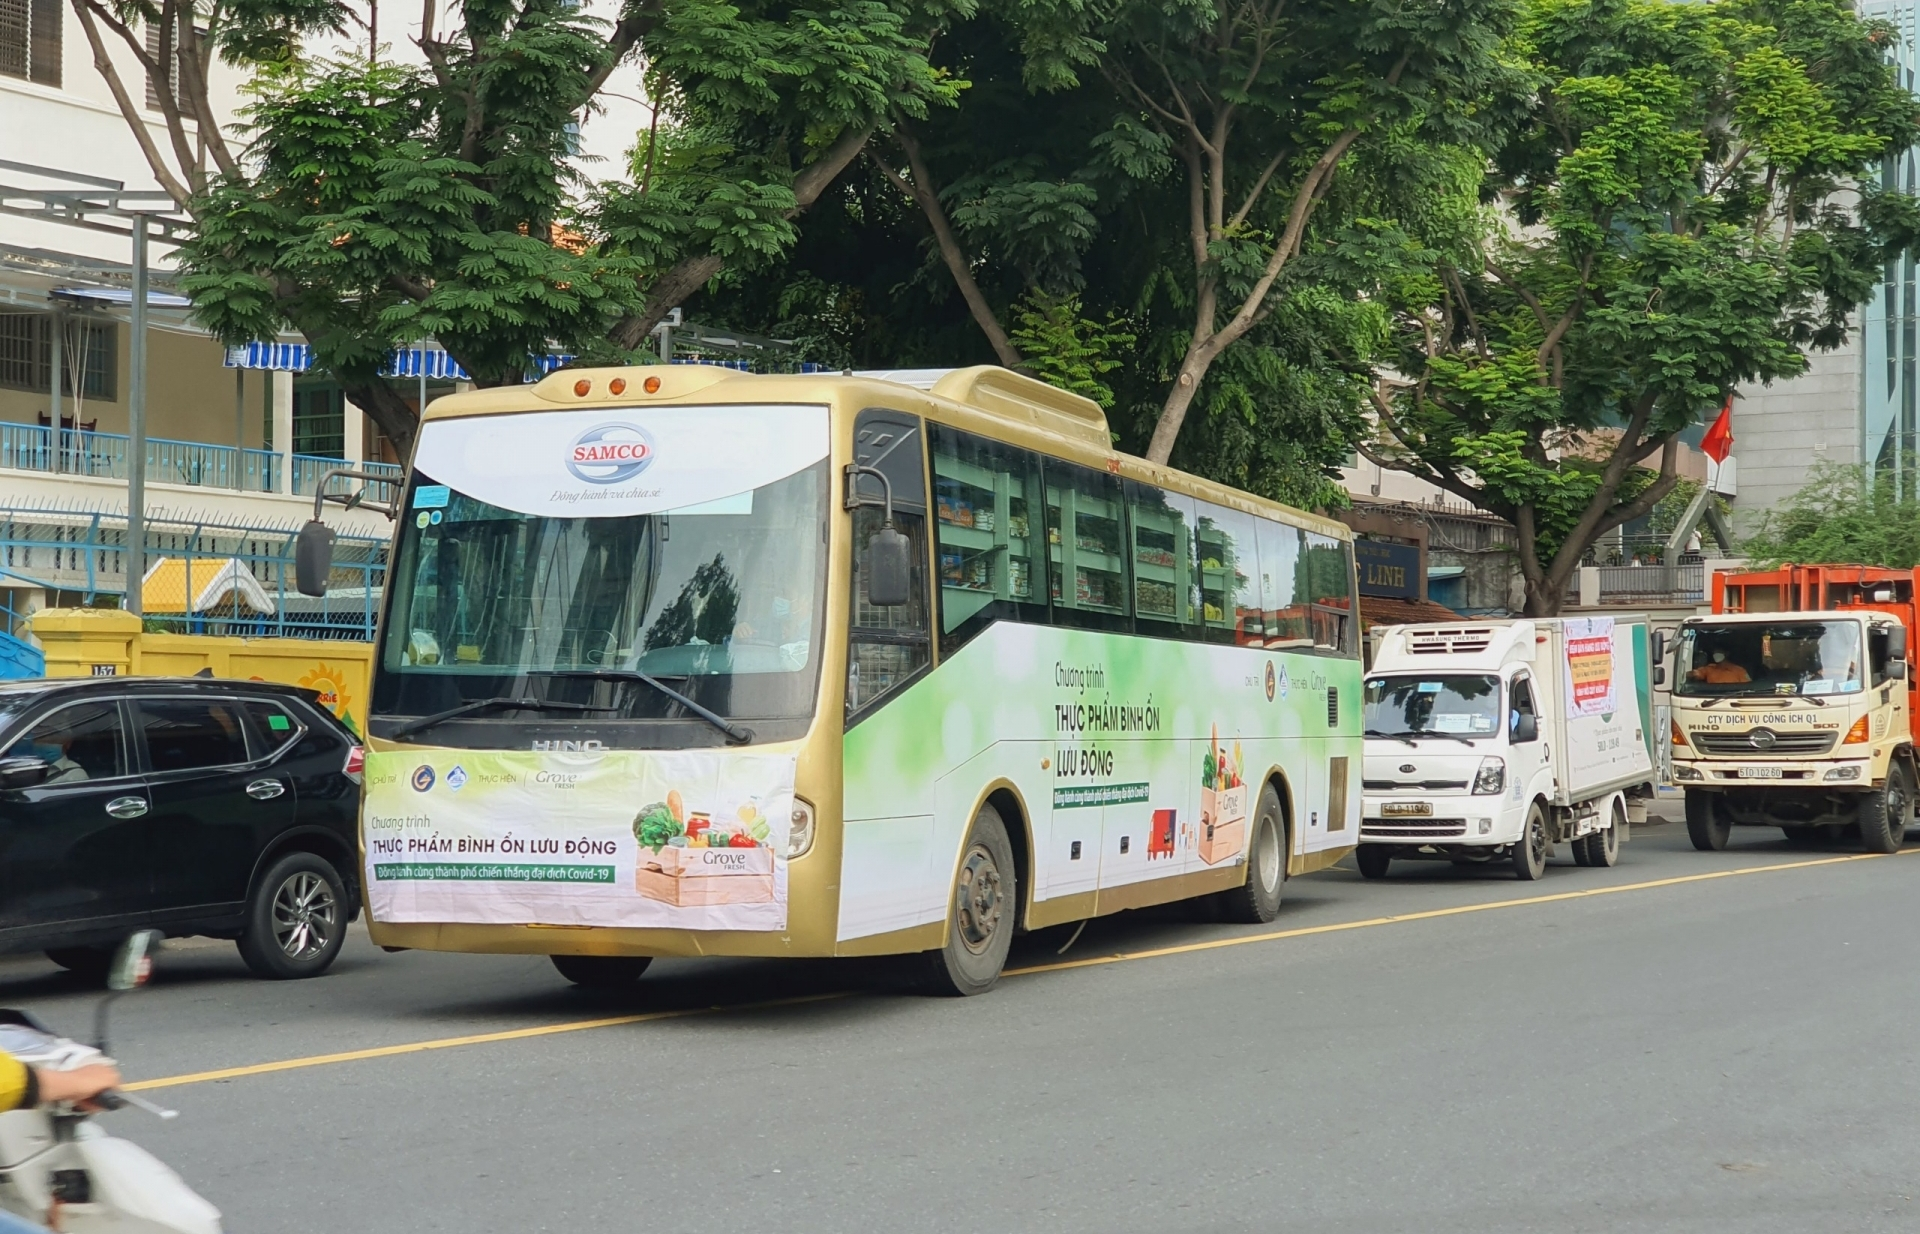 Bus converted to mini-supermarkets to sell food in Ho Chi Minh City